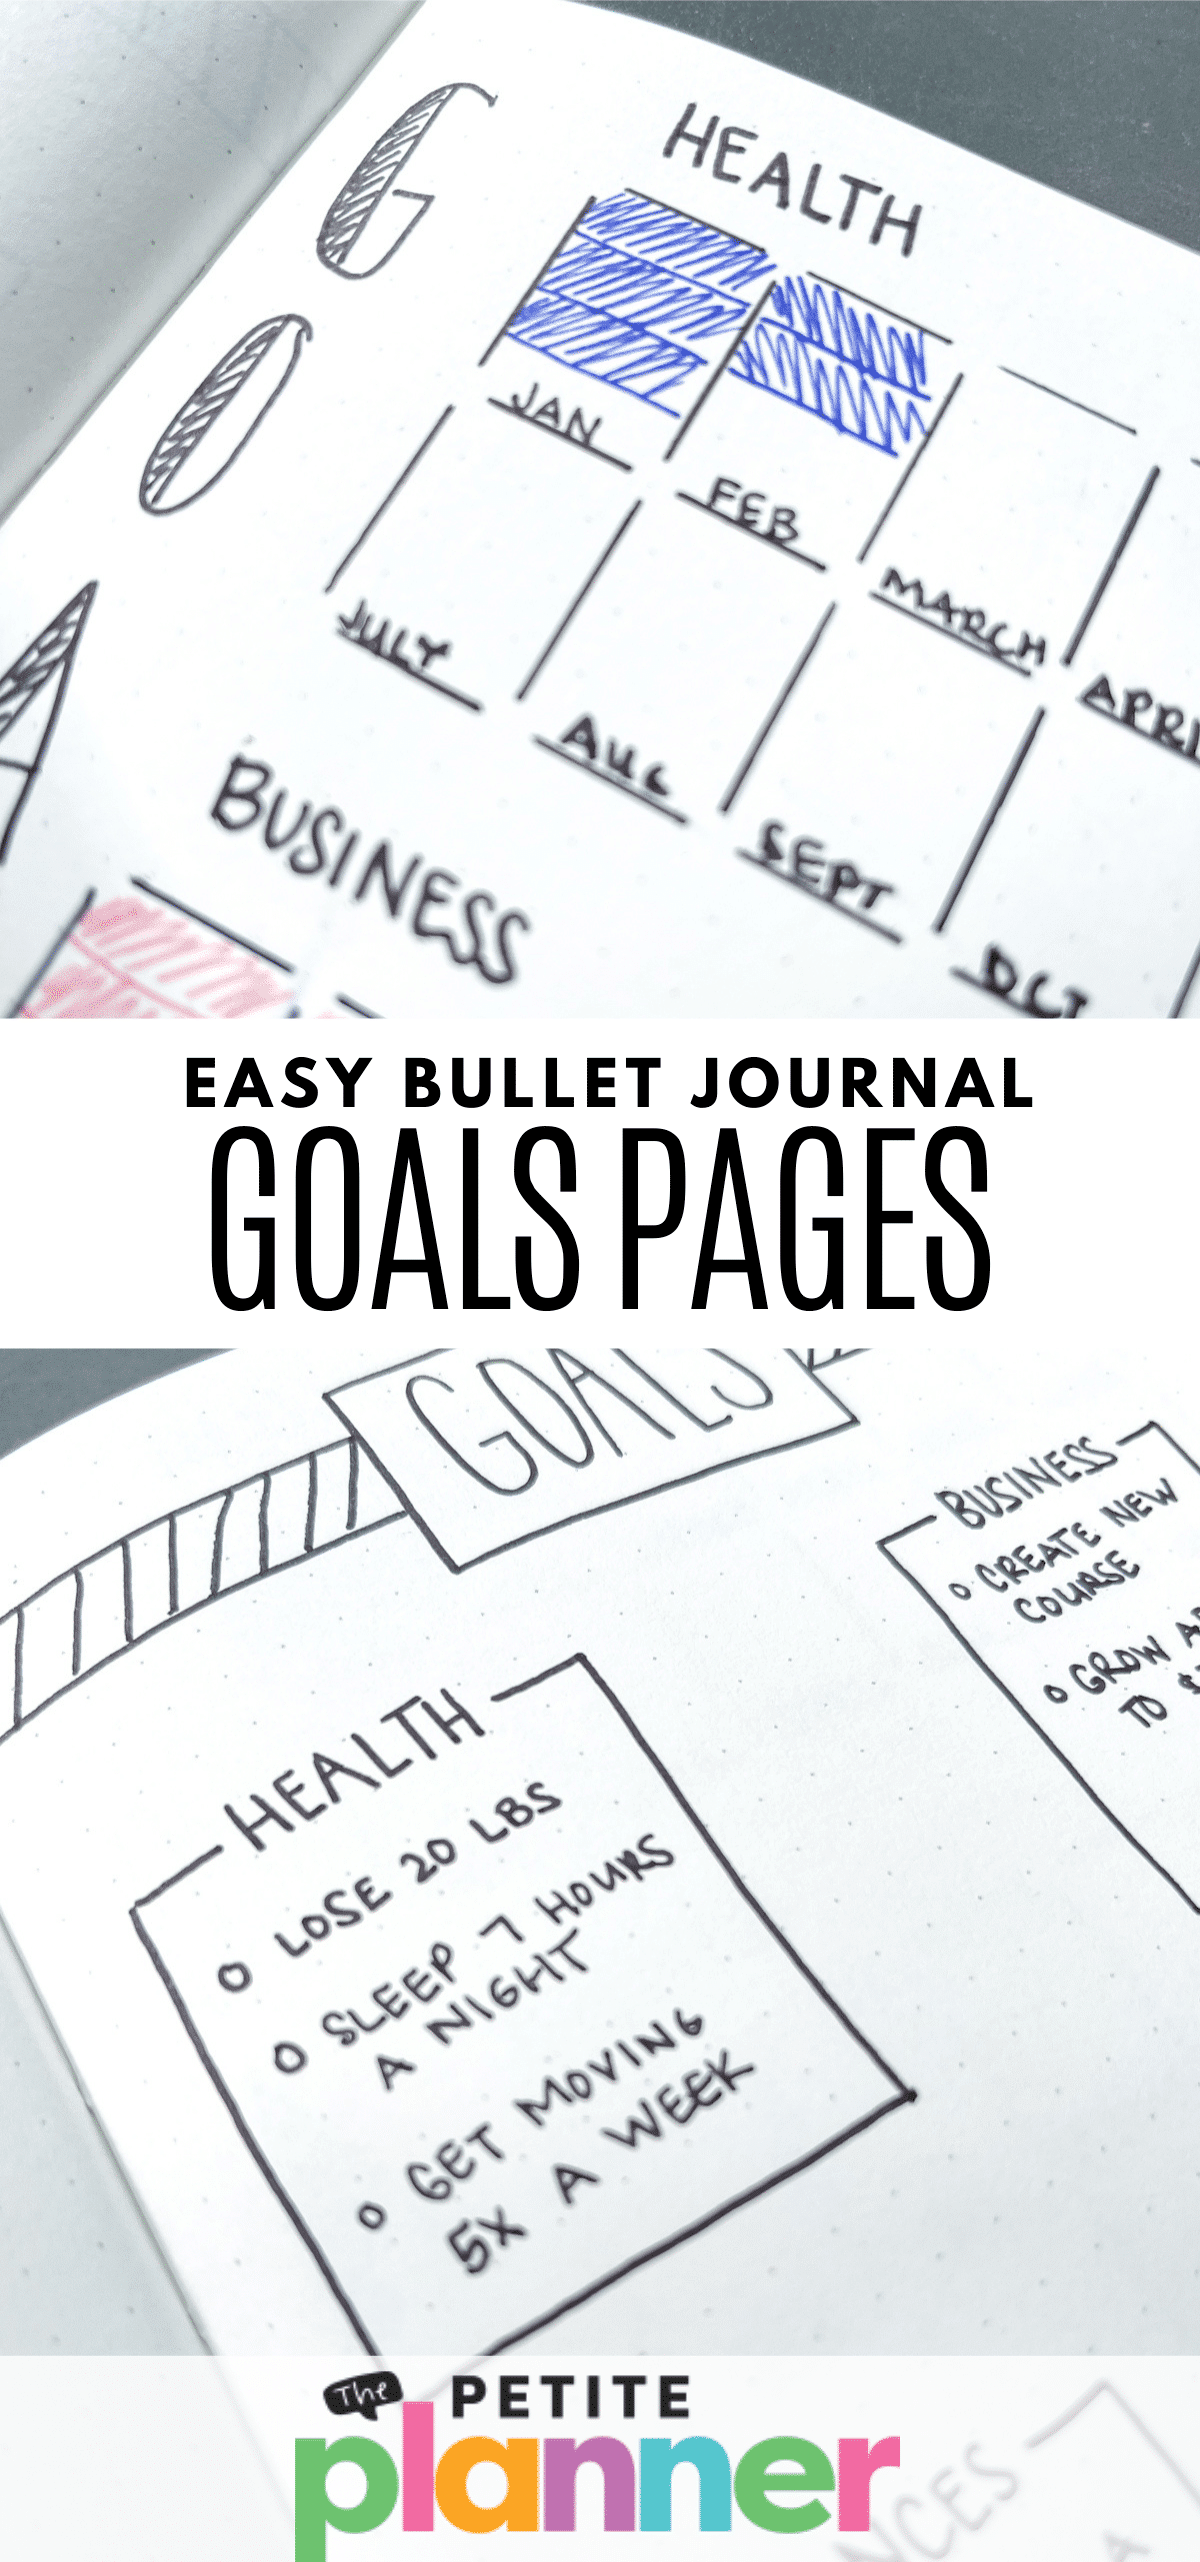 Easy Bullet Journal Goals Page Ideas